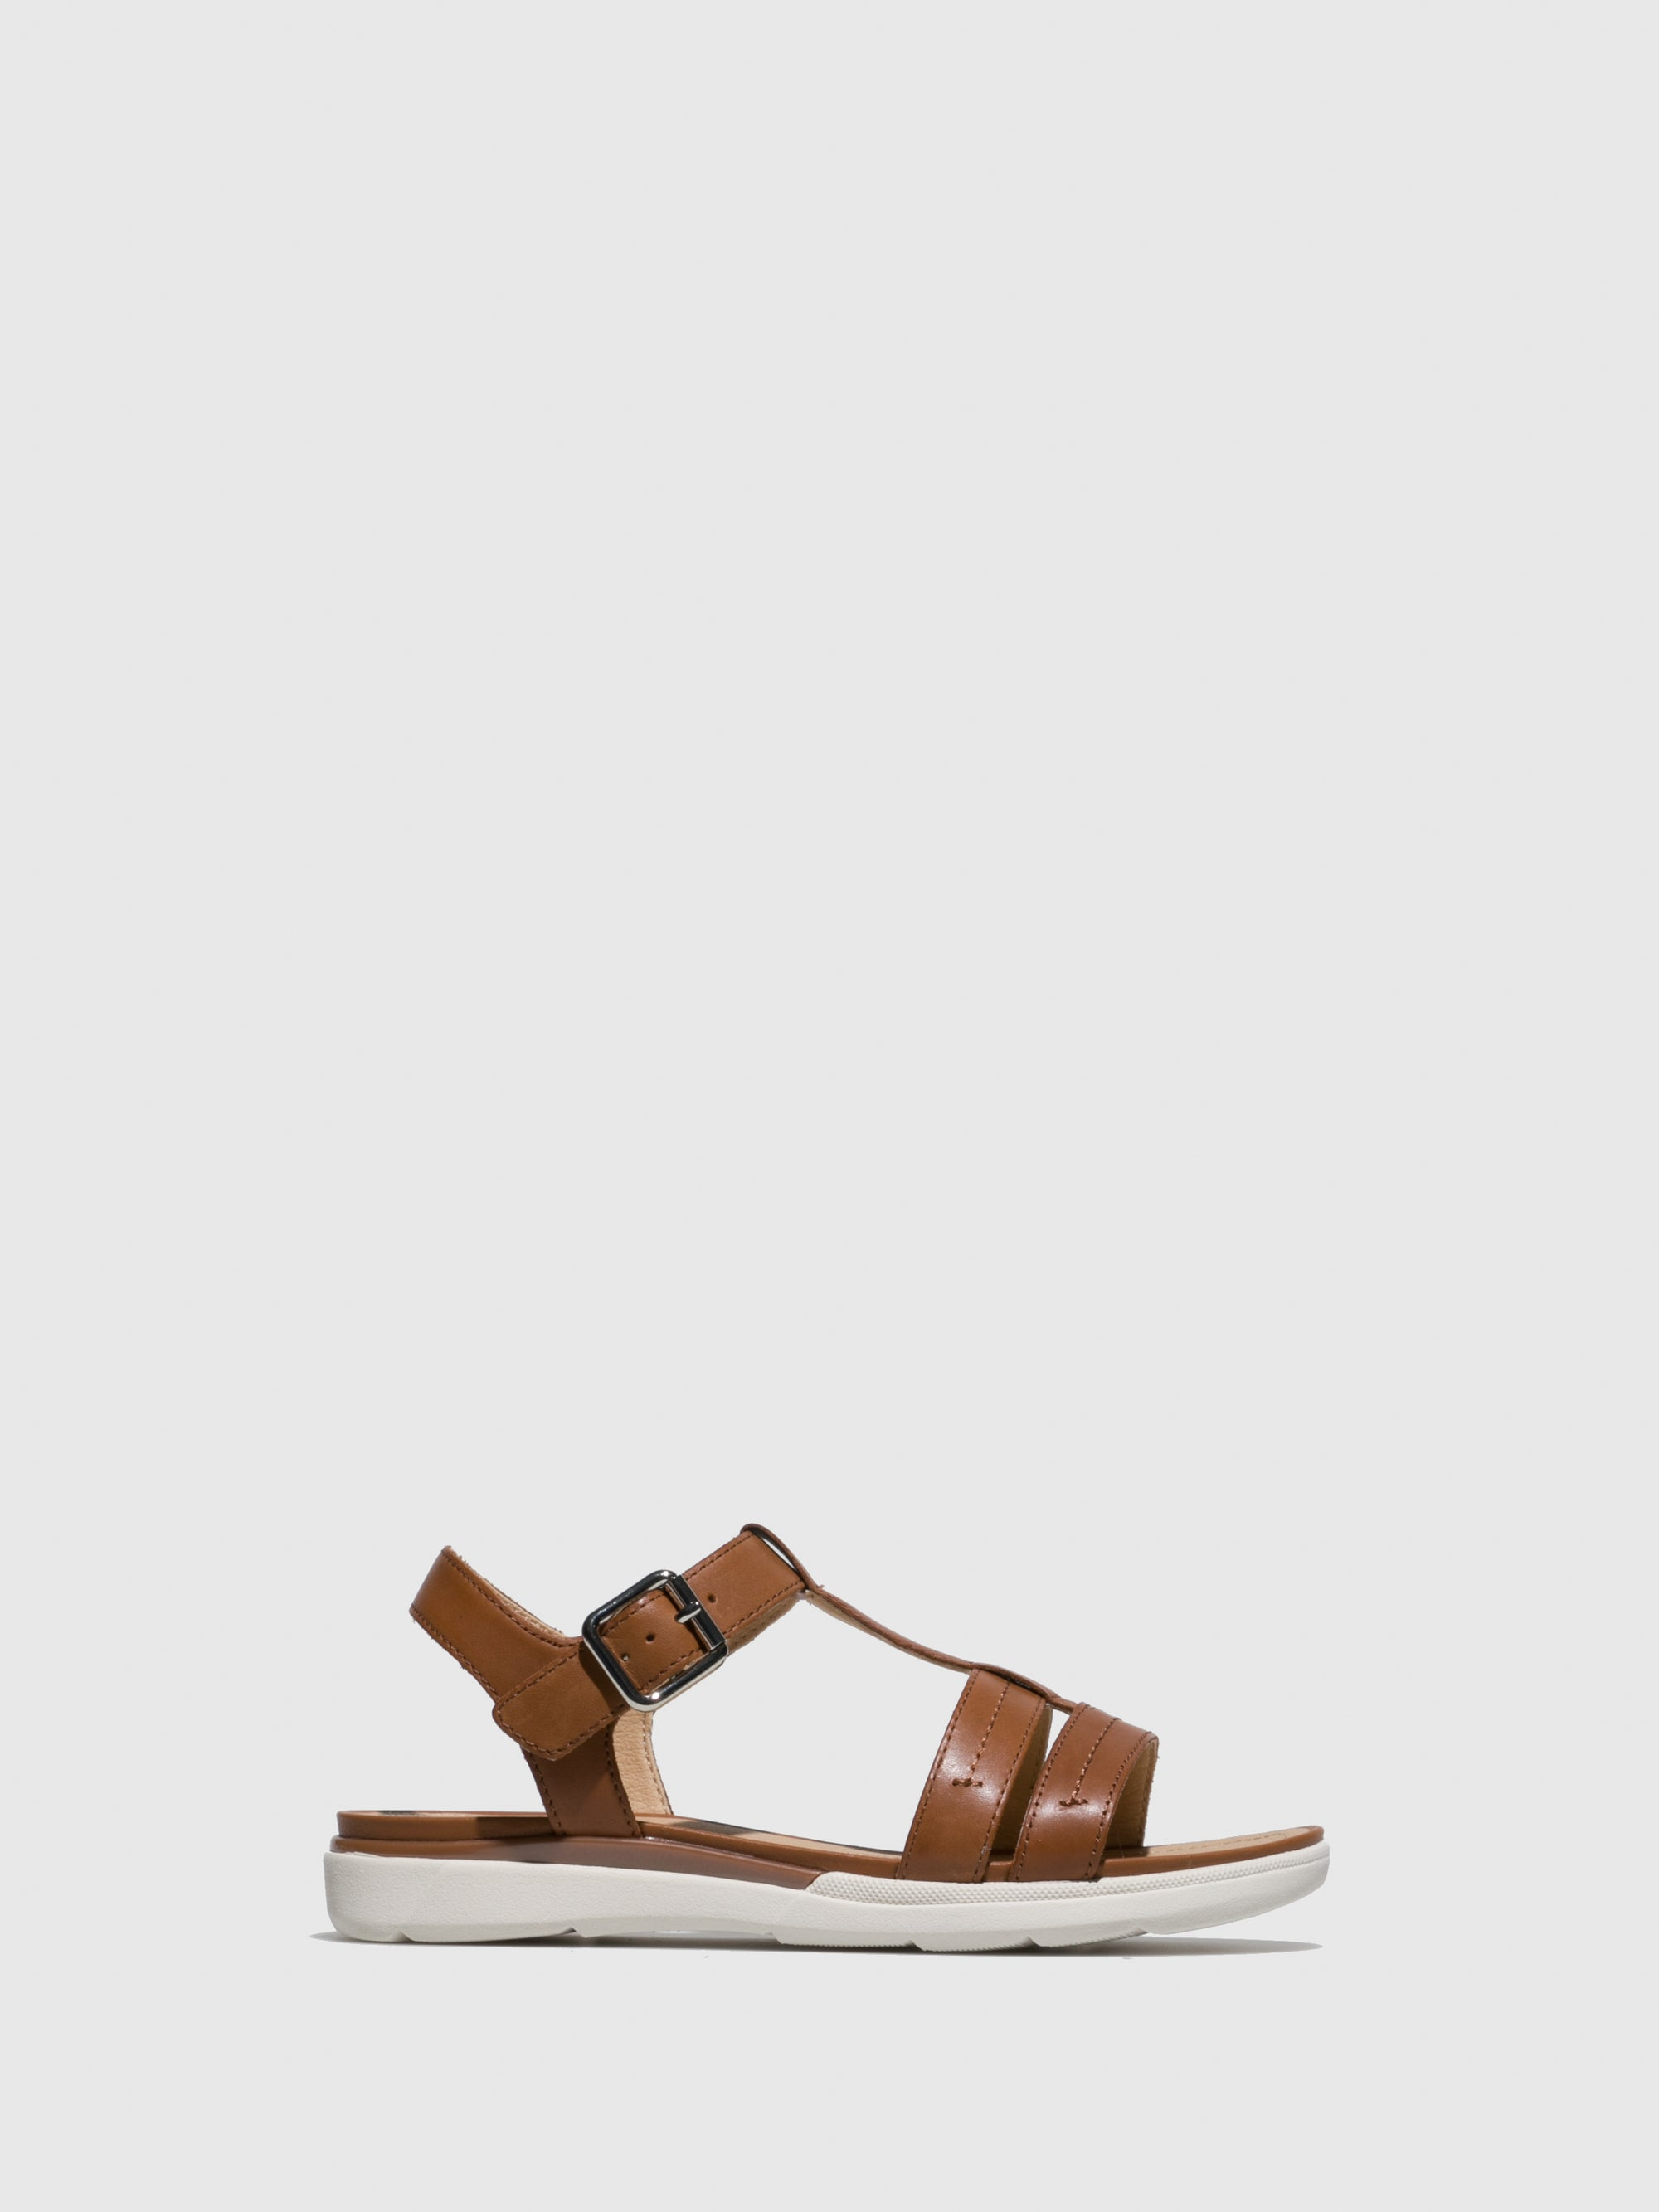 Geox Brown Ankle Strap Sandals